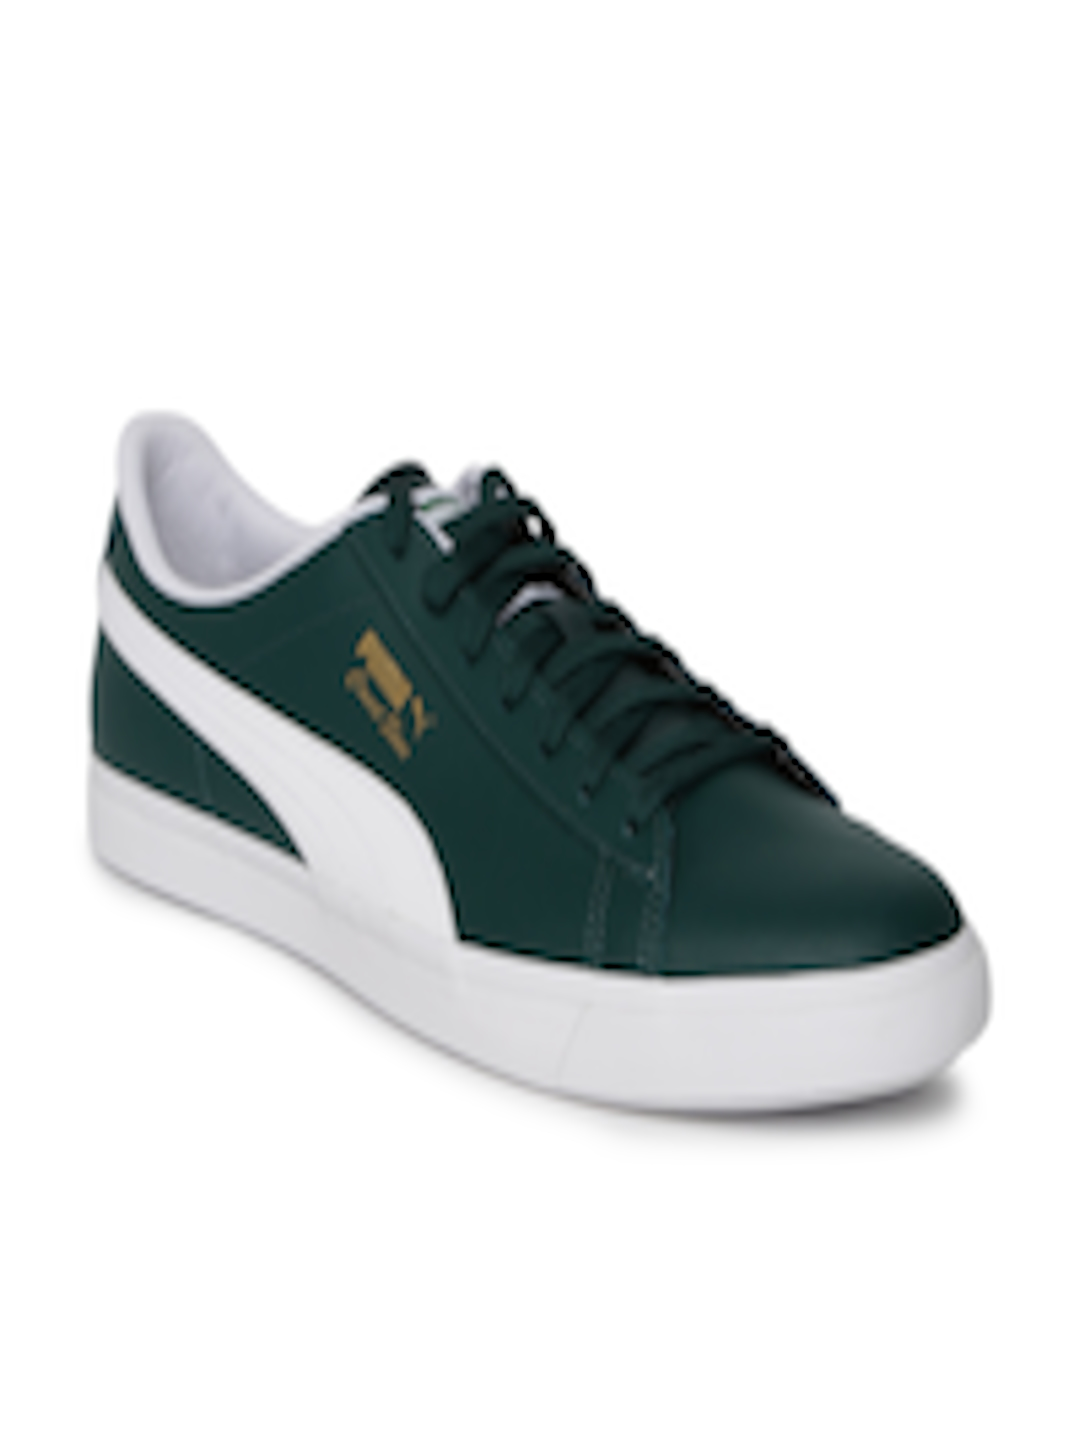 the latest abde2 42f34 Buy Puma Kids Unisex Green Court Star Vulc FS Leather Sneakers - - Footwear  for Unisex